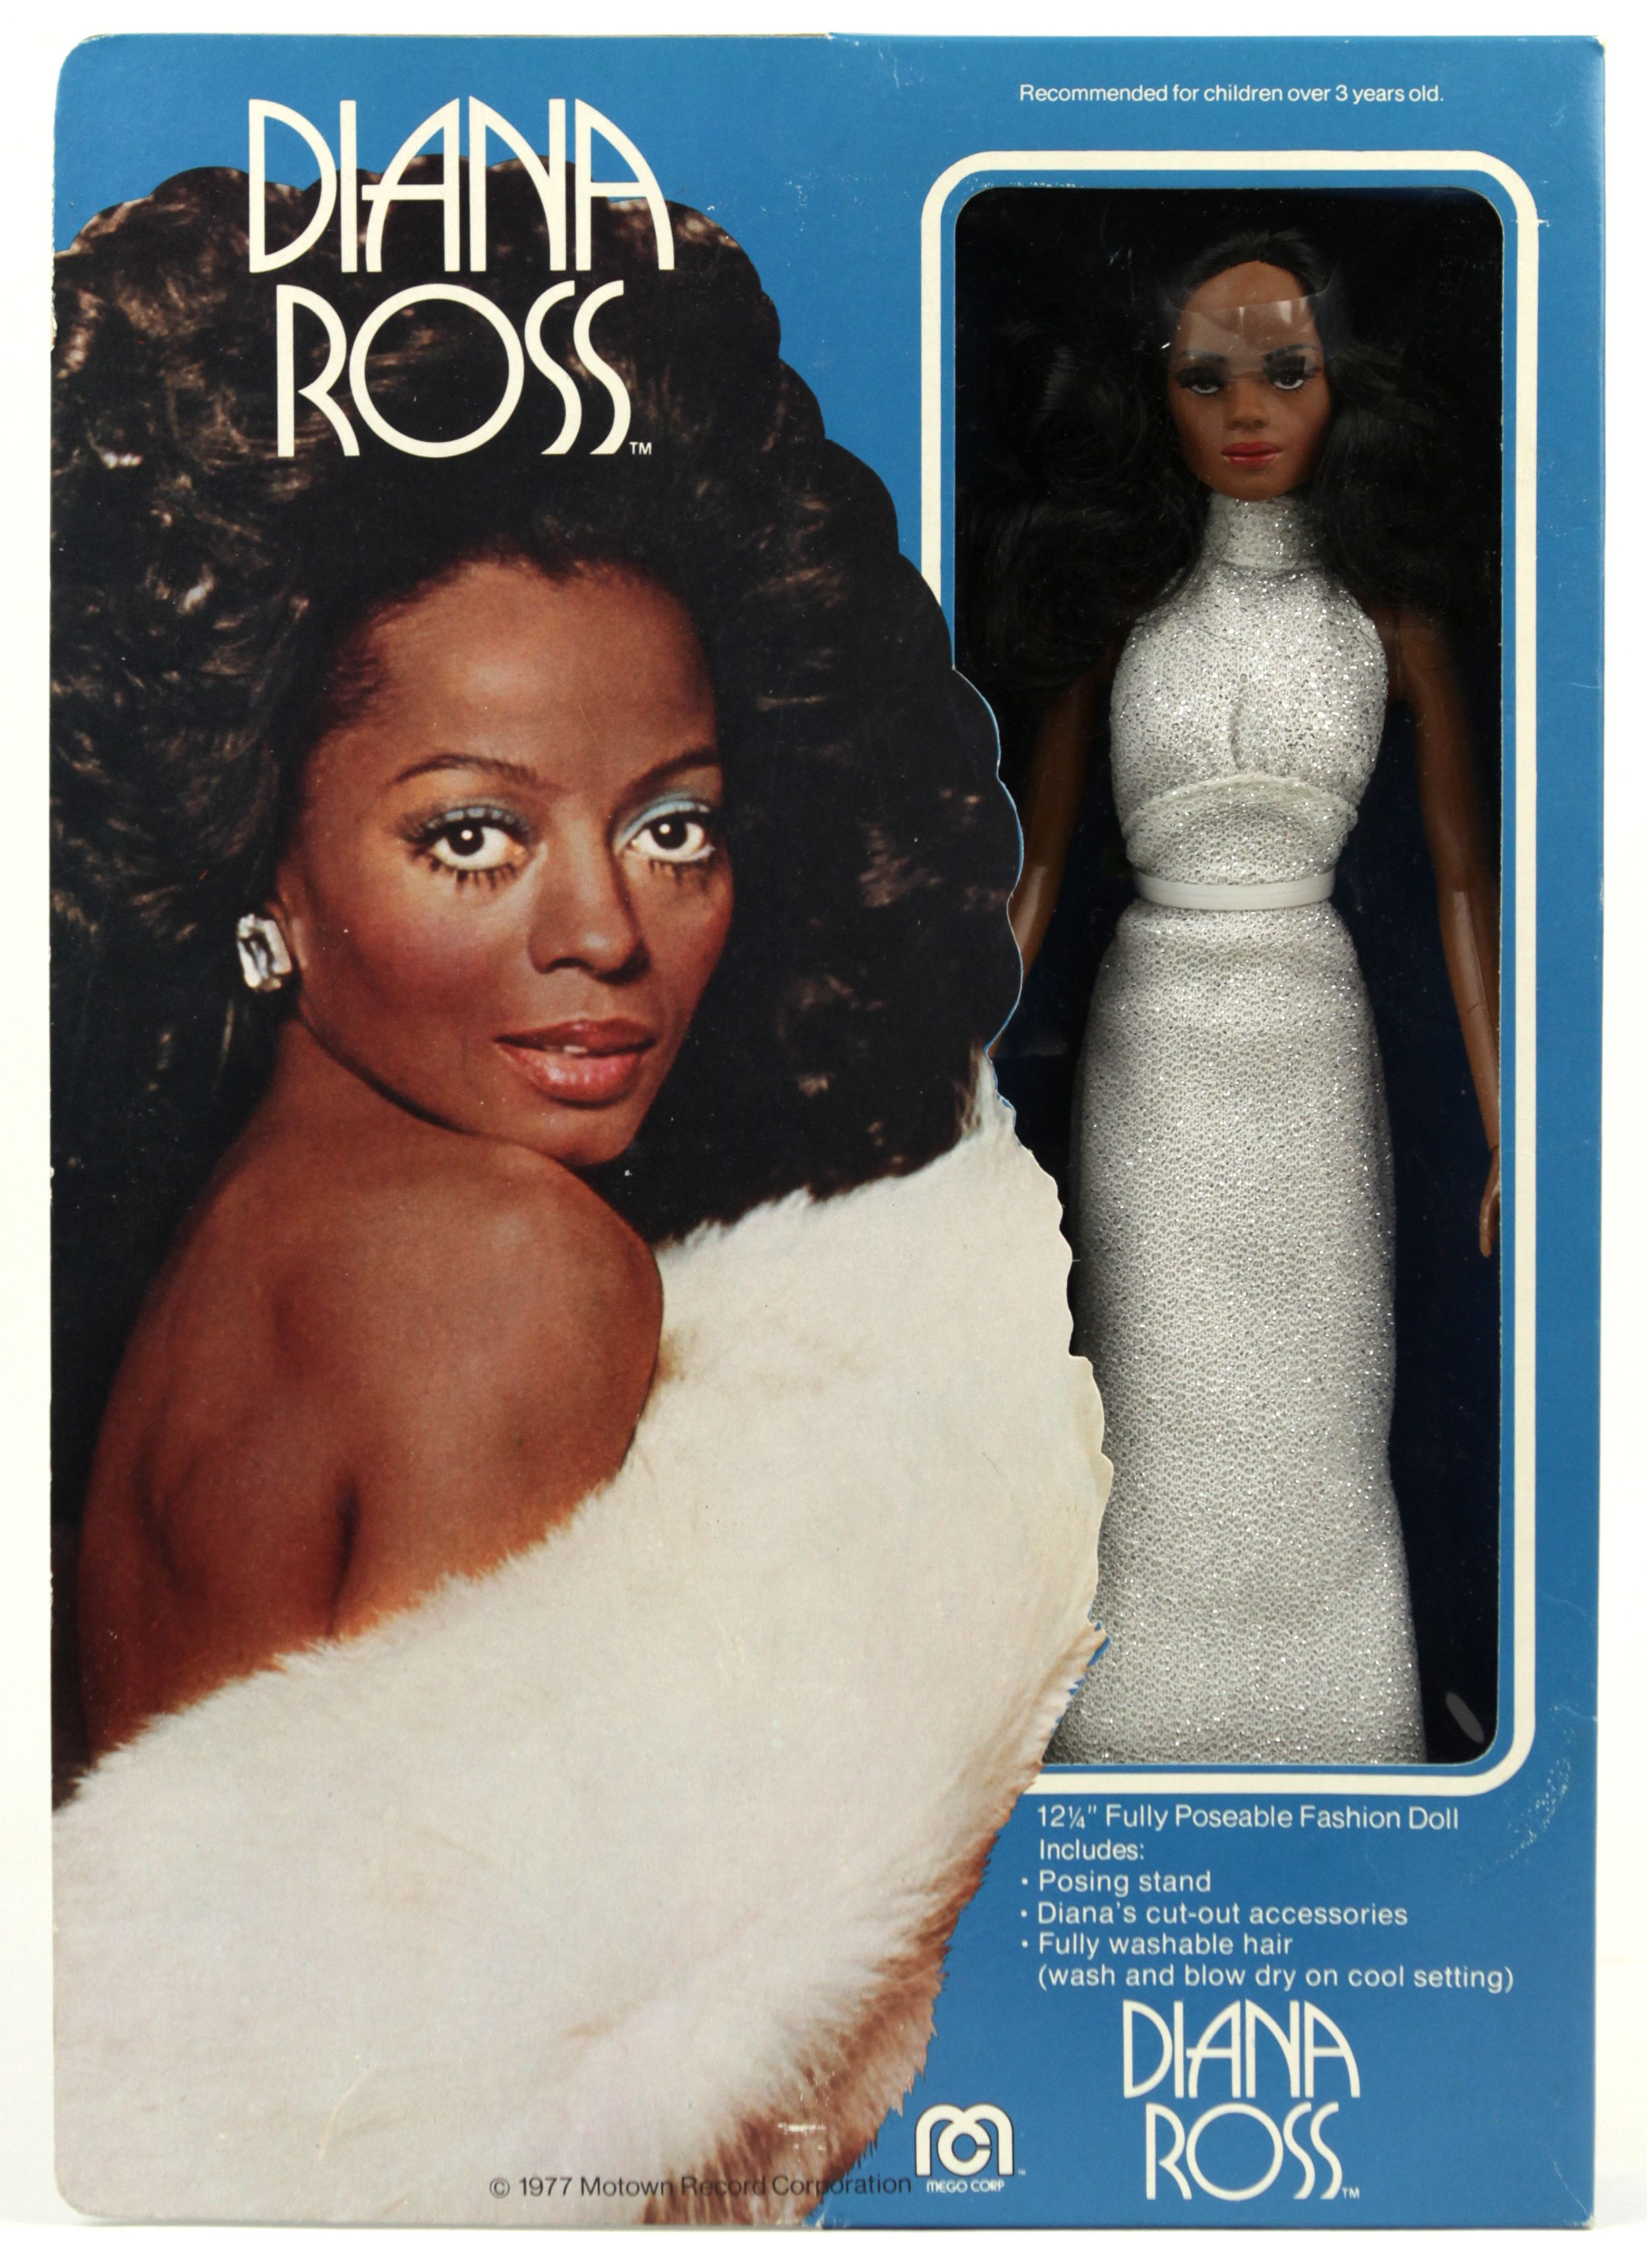 Diana Ross seventies Doll